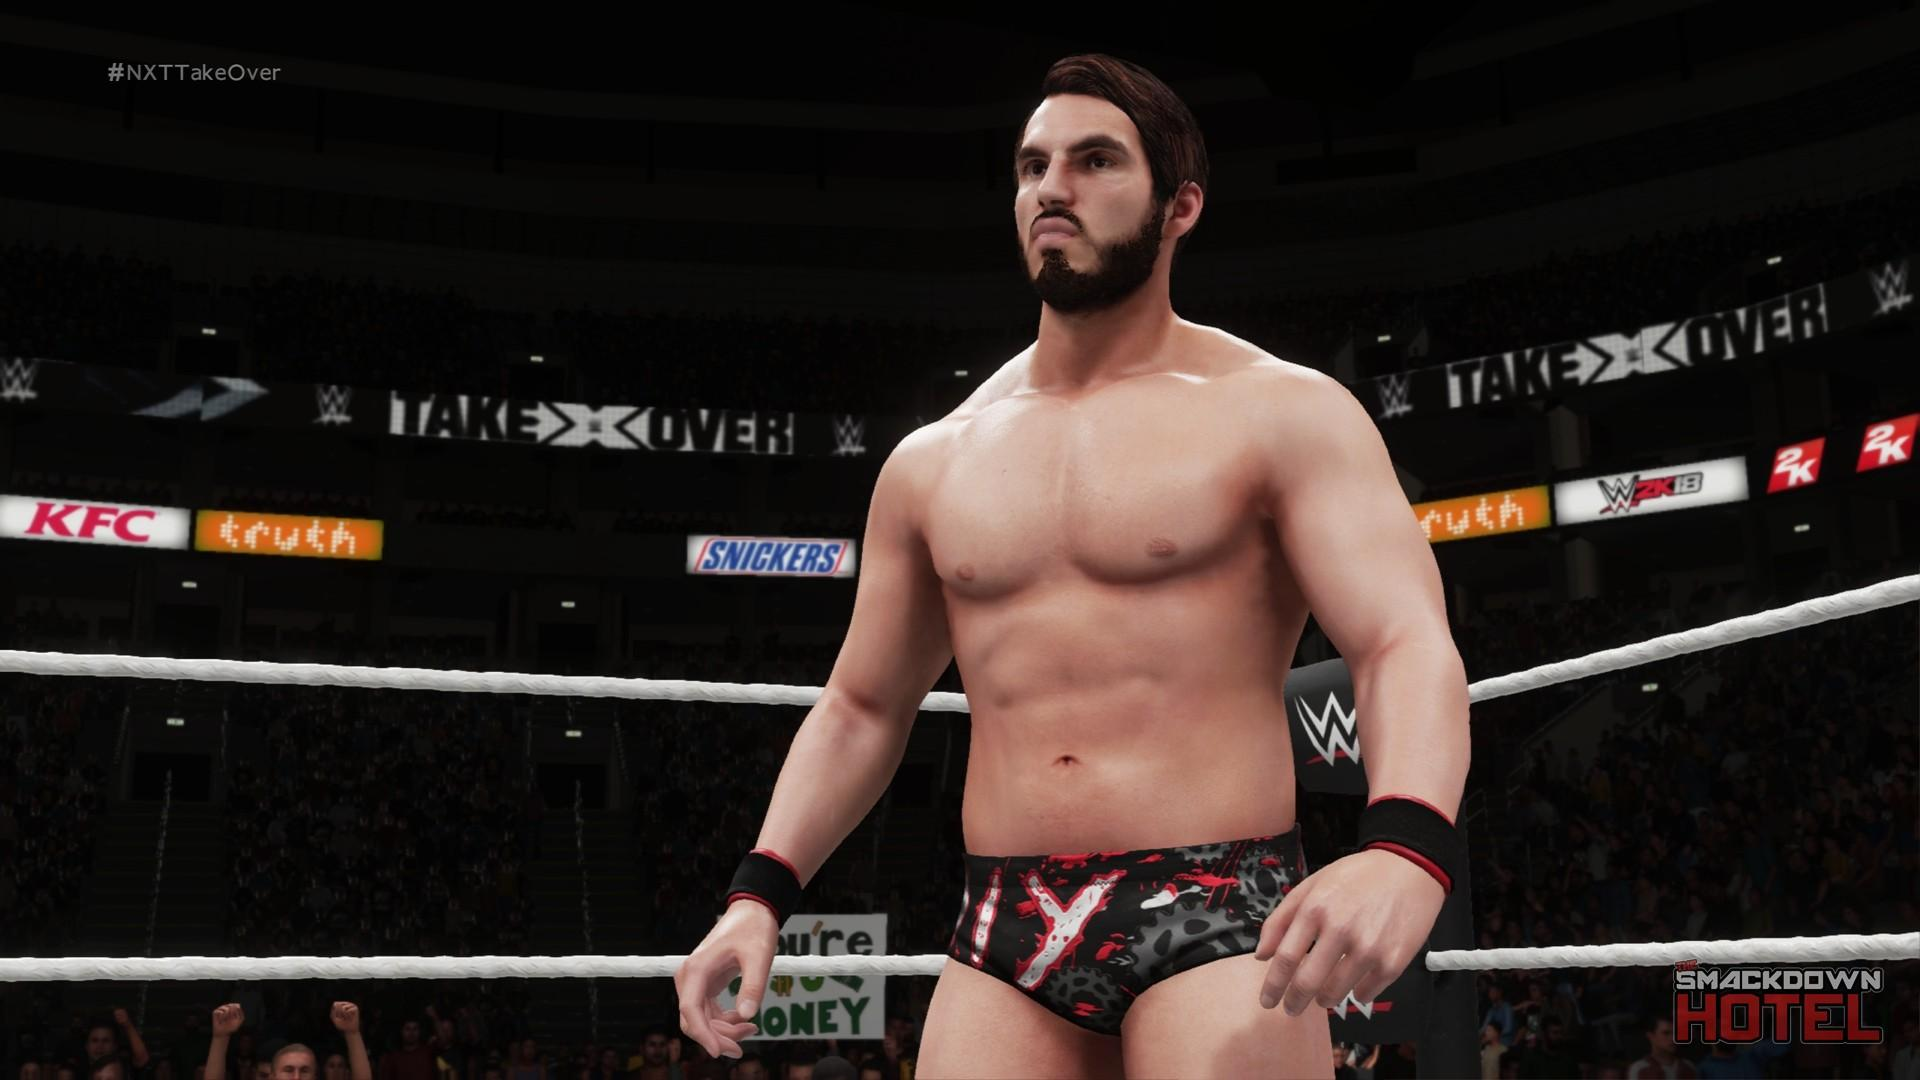 WWE 2K18 Images Gallery: Screenshots For PlayStation 4